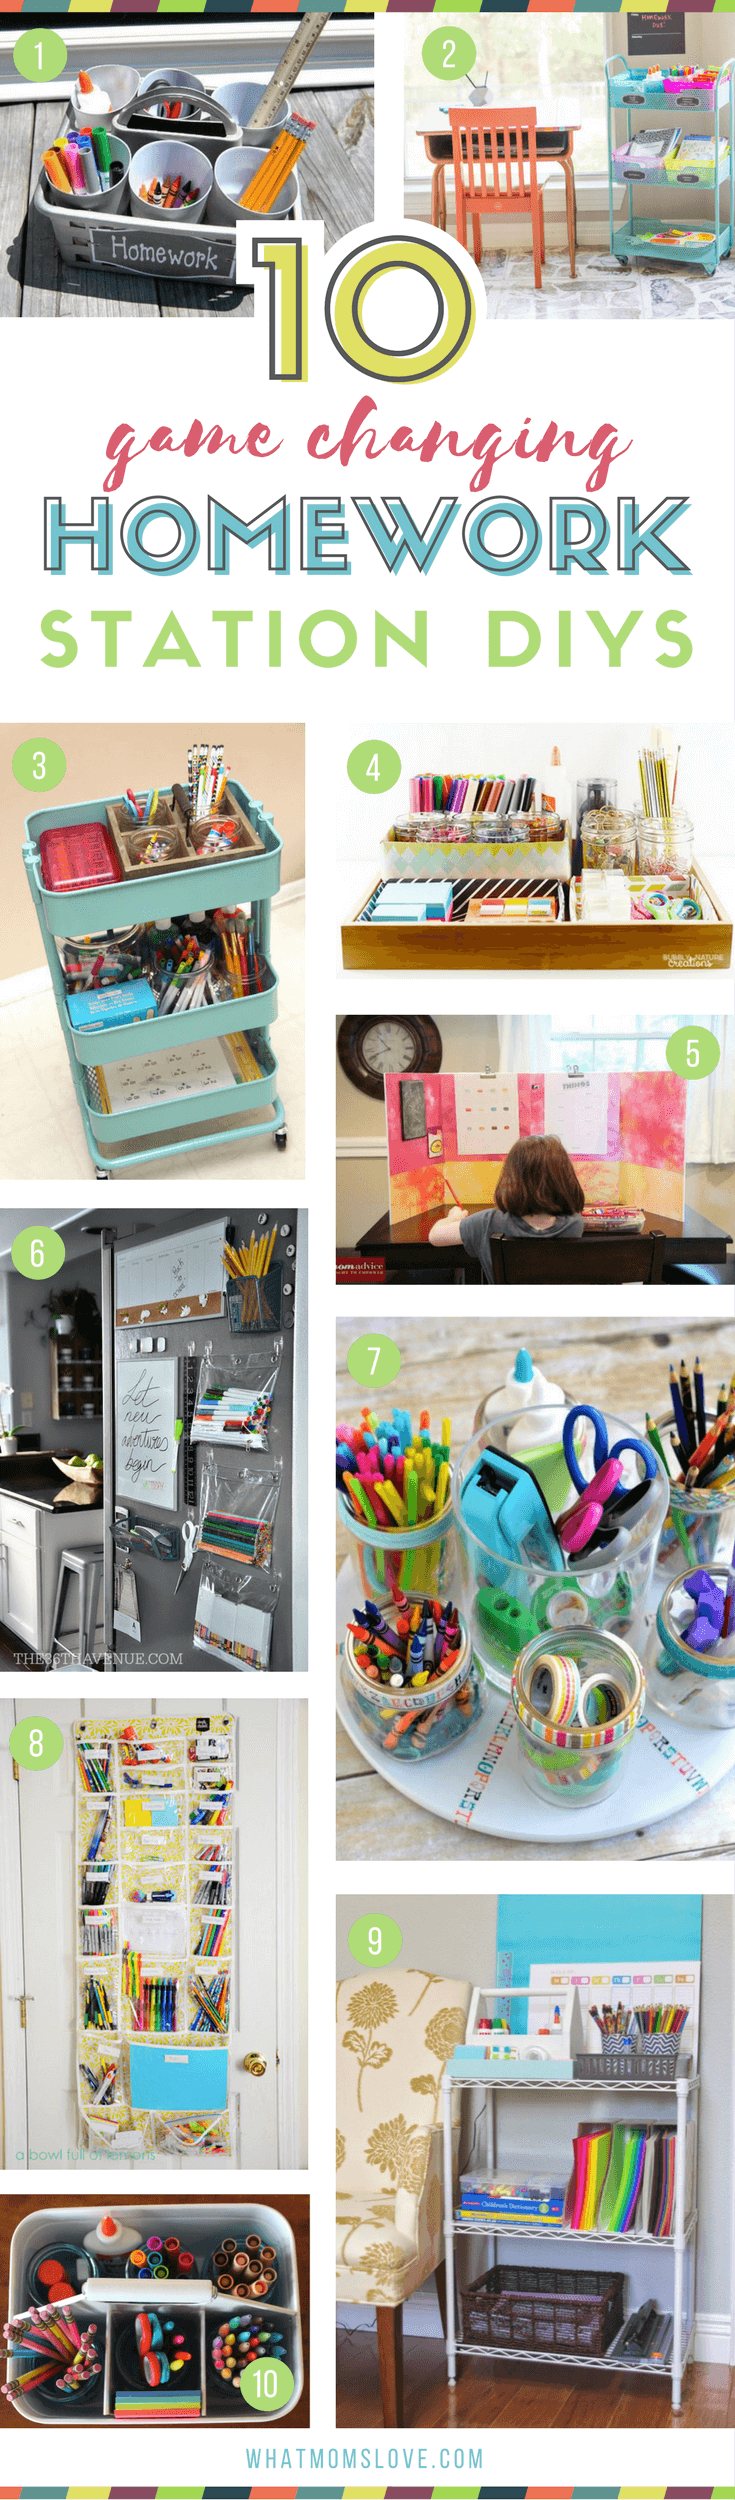 DIY portable Homework Stations for small spaces